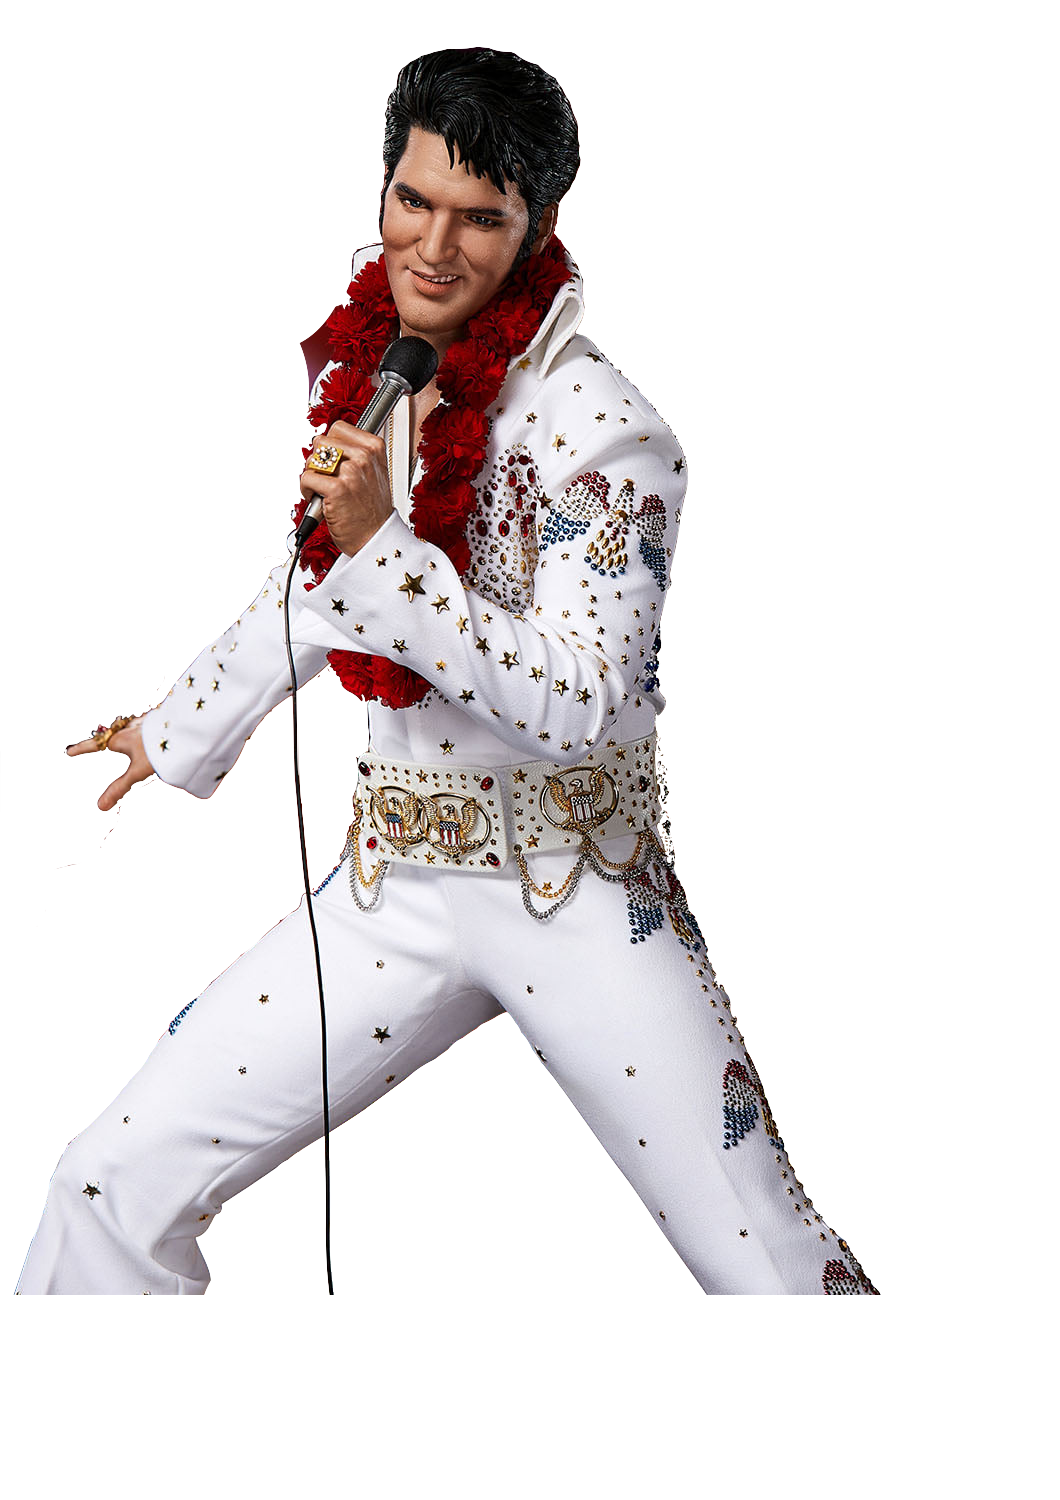 blitzway-superb-scale-elvis-presley-1:4-statue-toyslife